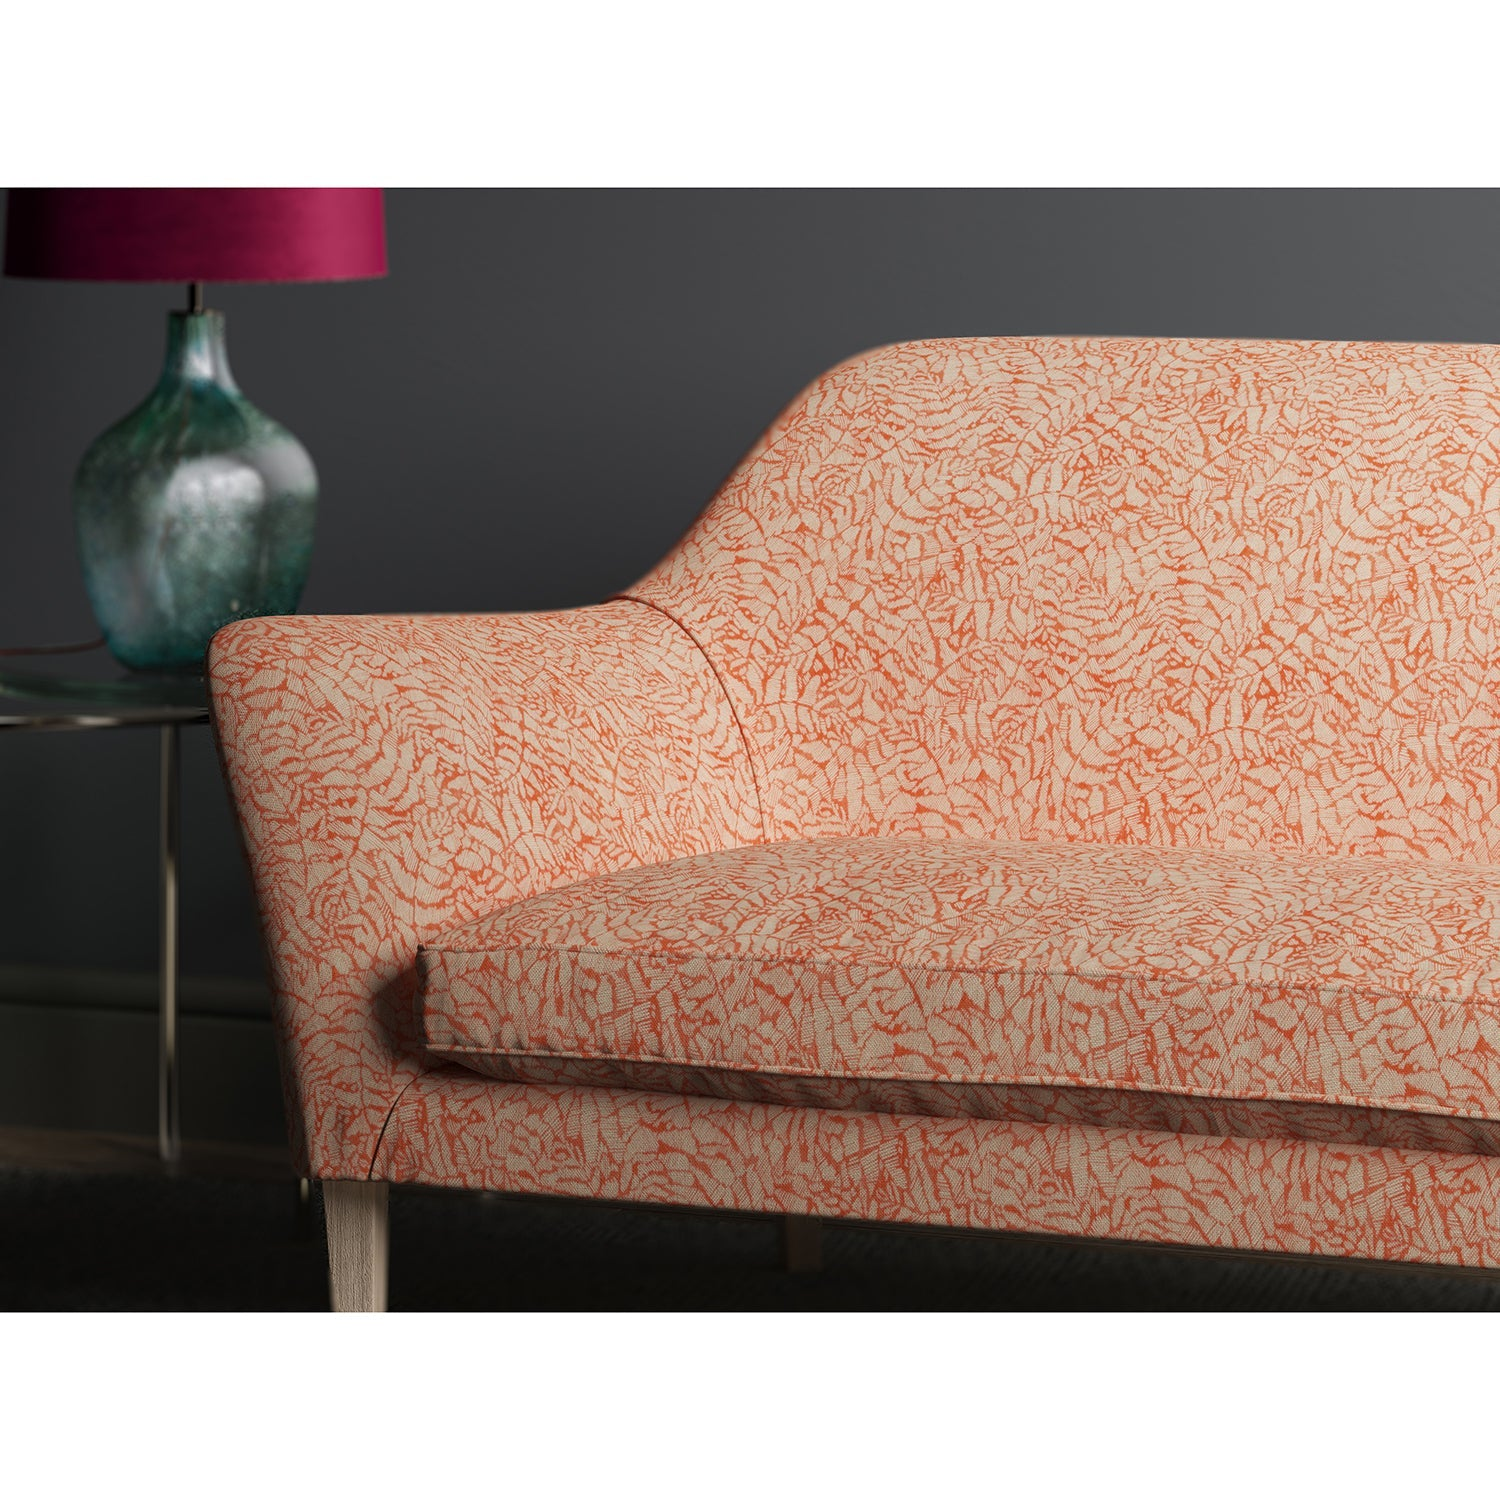 Sofa upholstered in a orange fabric with small white print